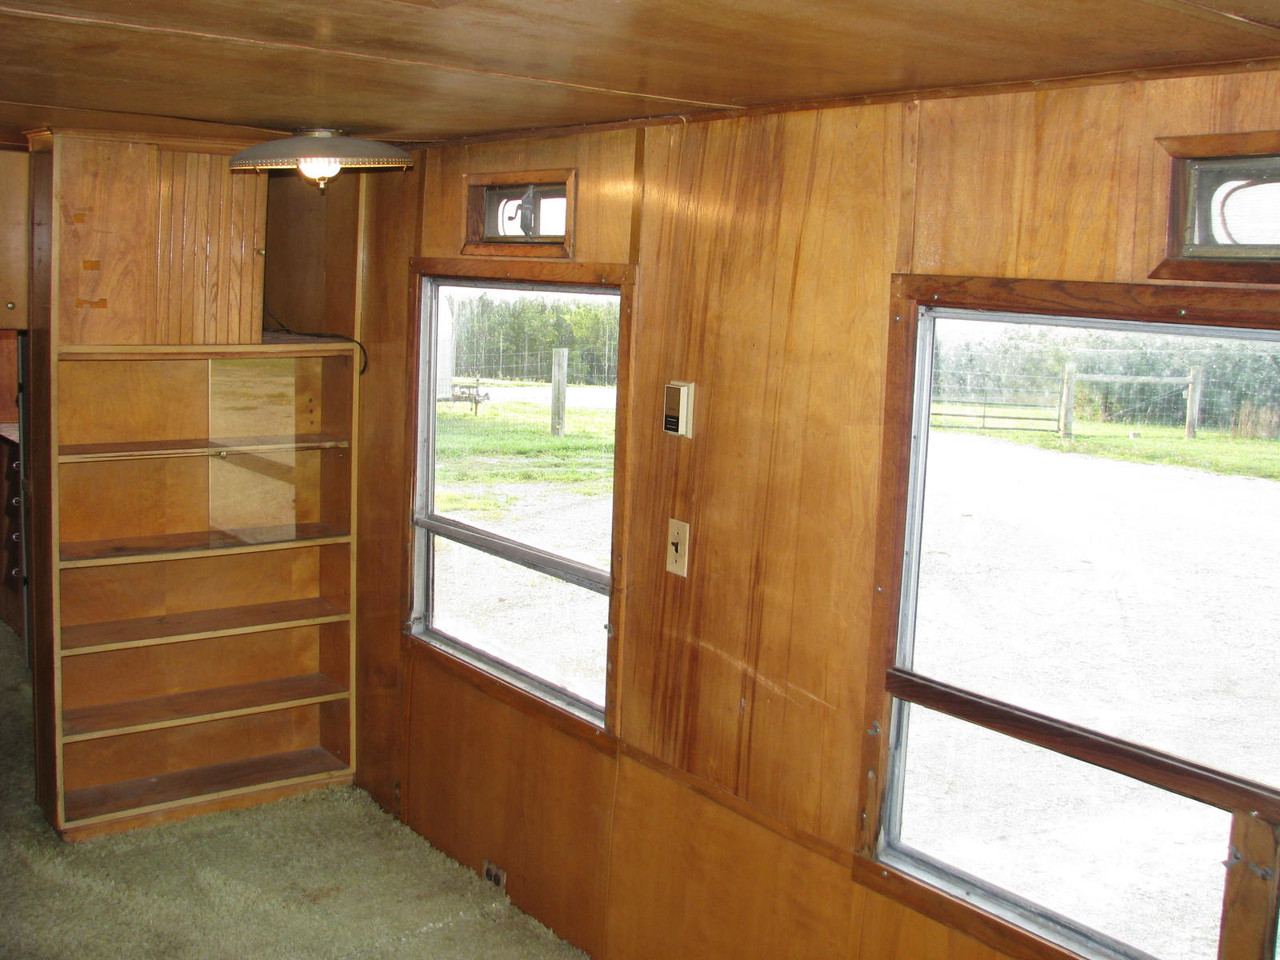 1956 Spartan 45 Ft. Imperial Mansion #857